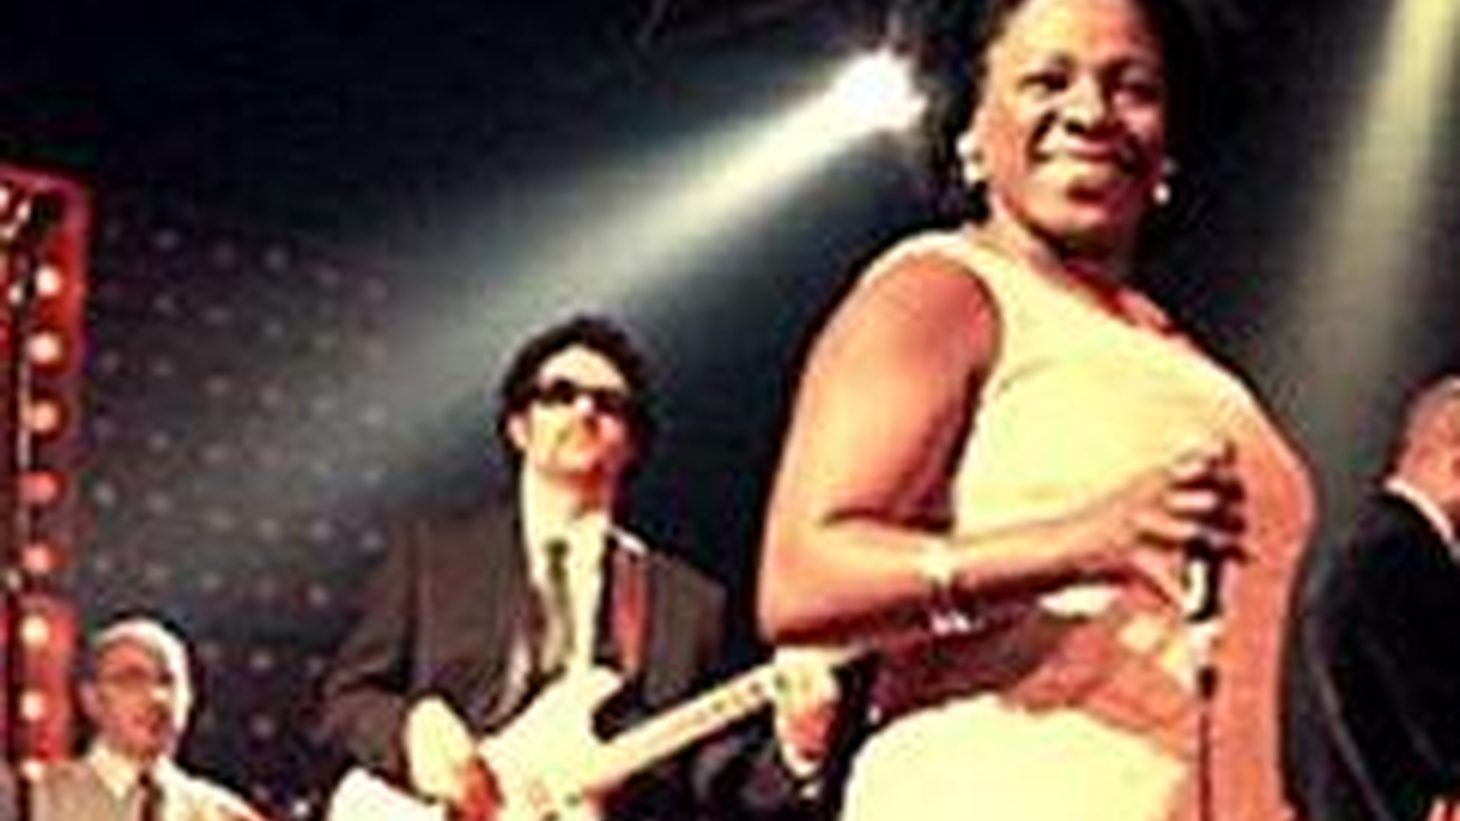 Sharon Jones and the Dap-Kings bring their full band and funky-soul sound when they perform on Morning Becomes Eclectic at 11:15am.